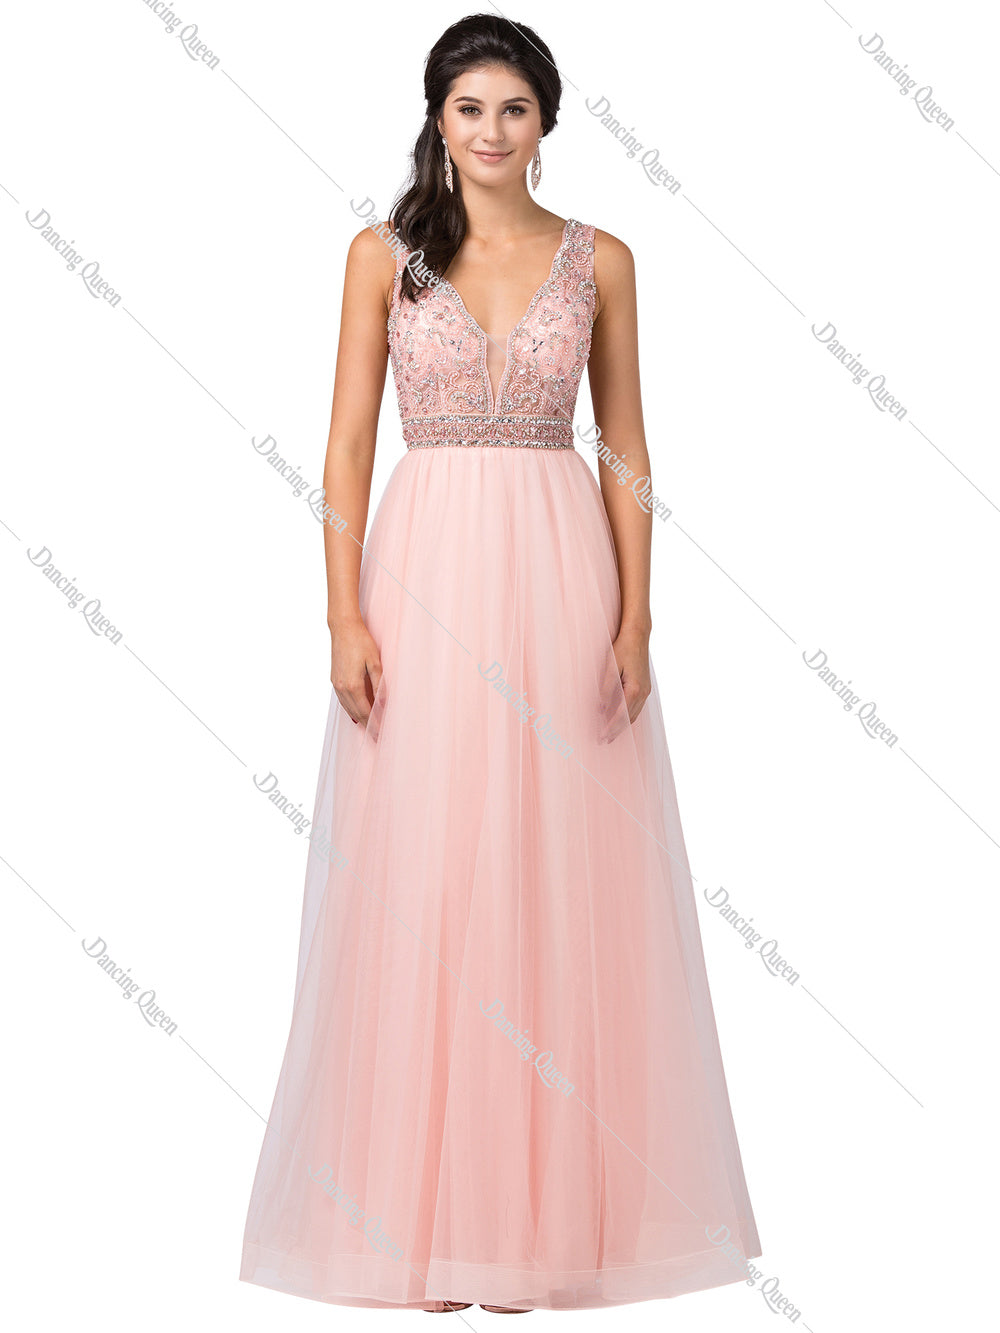 DQ 2520 - A-line with Bead & Scalloped Trim V-neck and Full Tulle BallGown - Diggz Prom